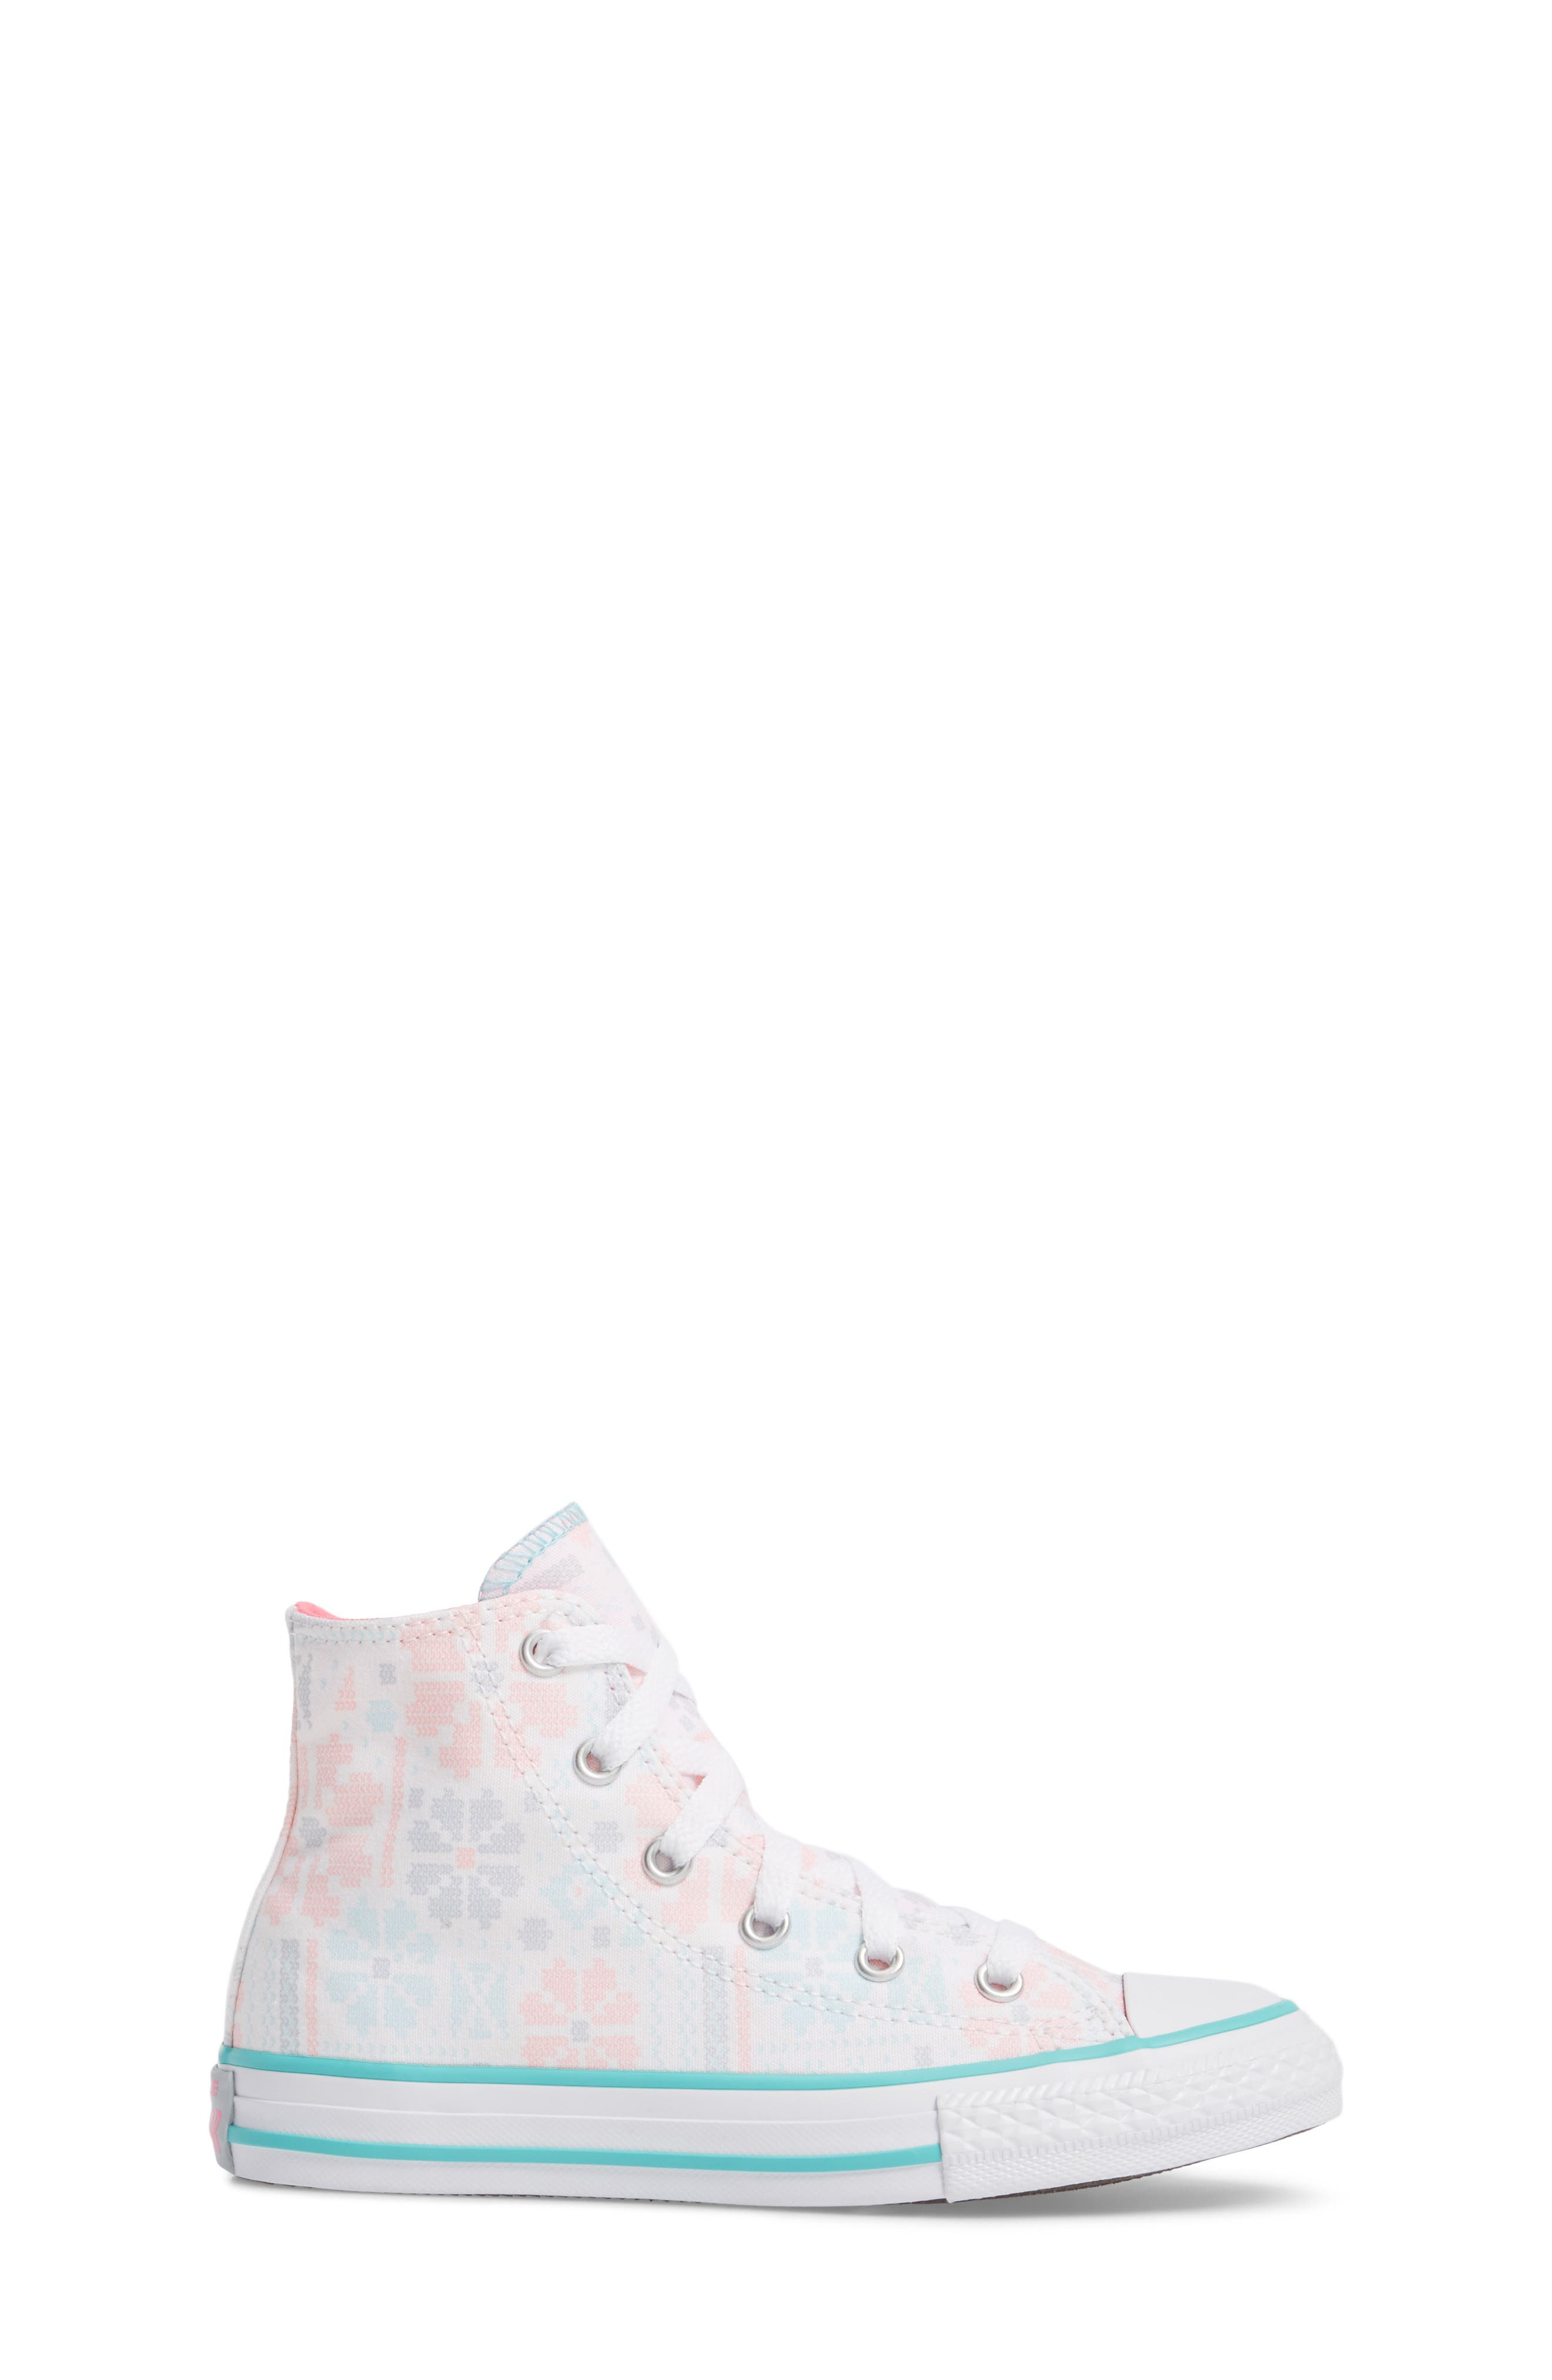 Chuck Taylor<sup>®</sup> All Star<sup>®</sup> High Top Sneaker,                             Alternate thumbnail 3, color,